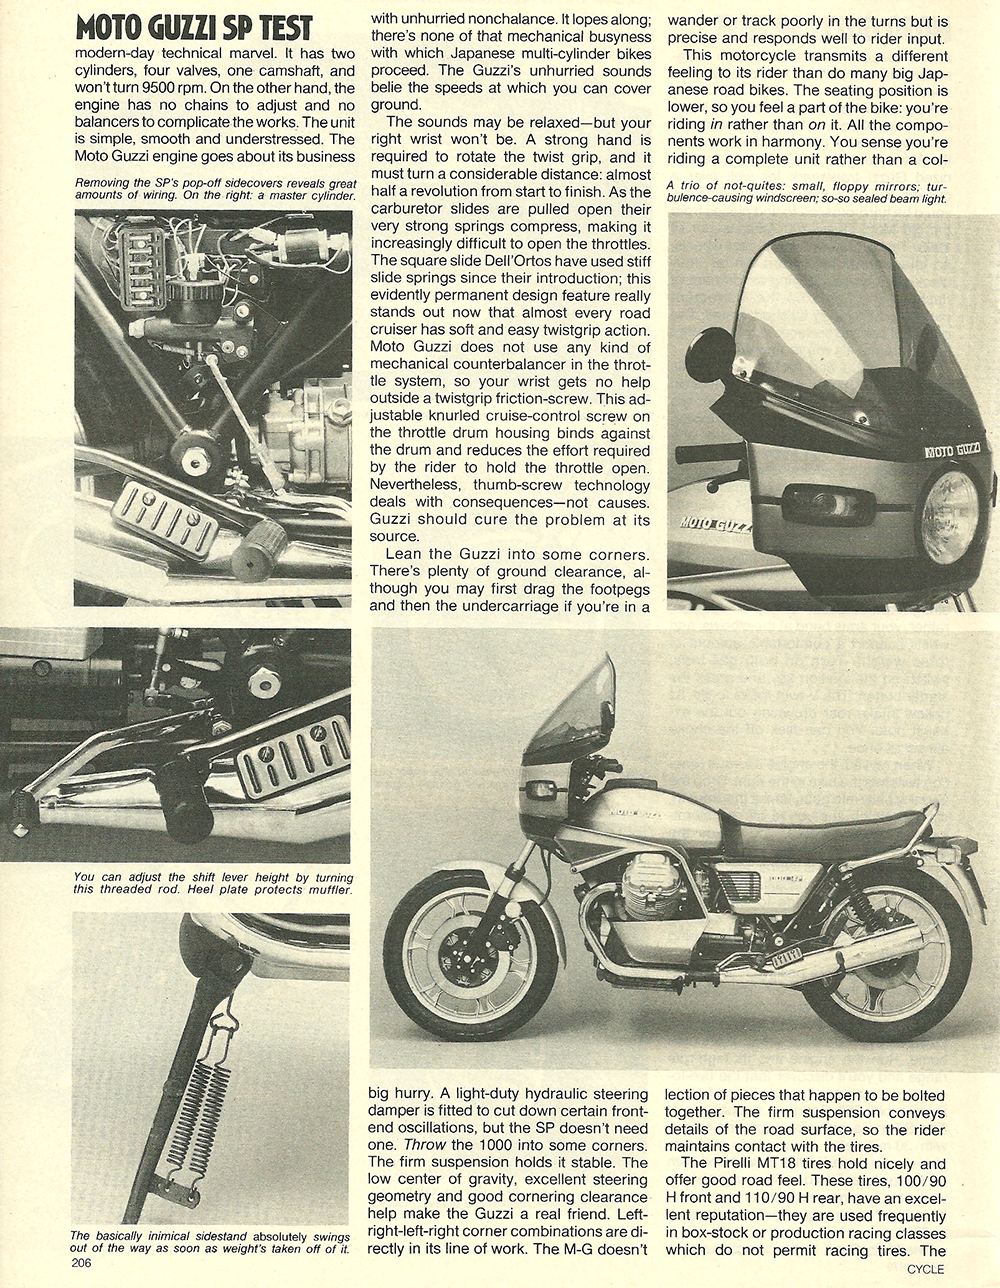 1979 Moto Guzzi 1000 SP road test 05.jpg